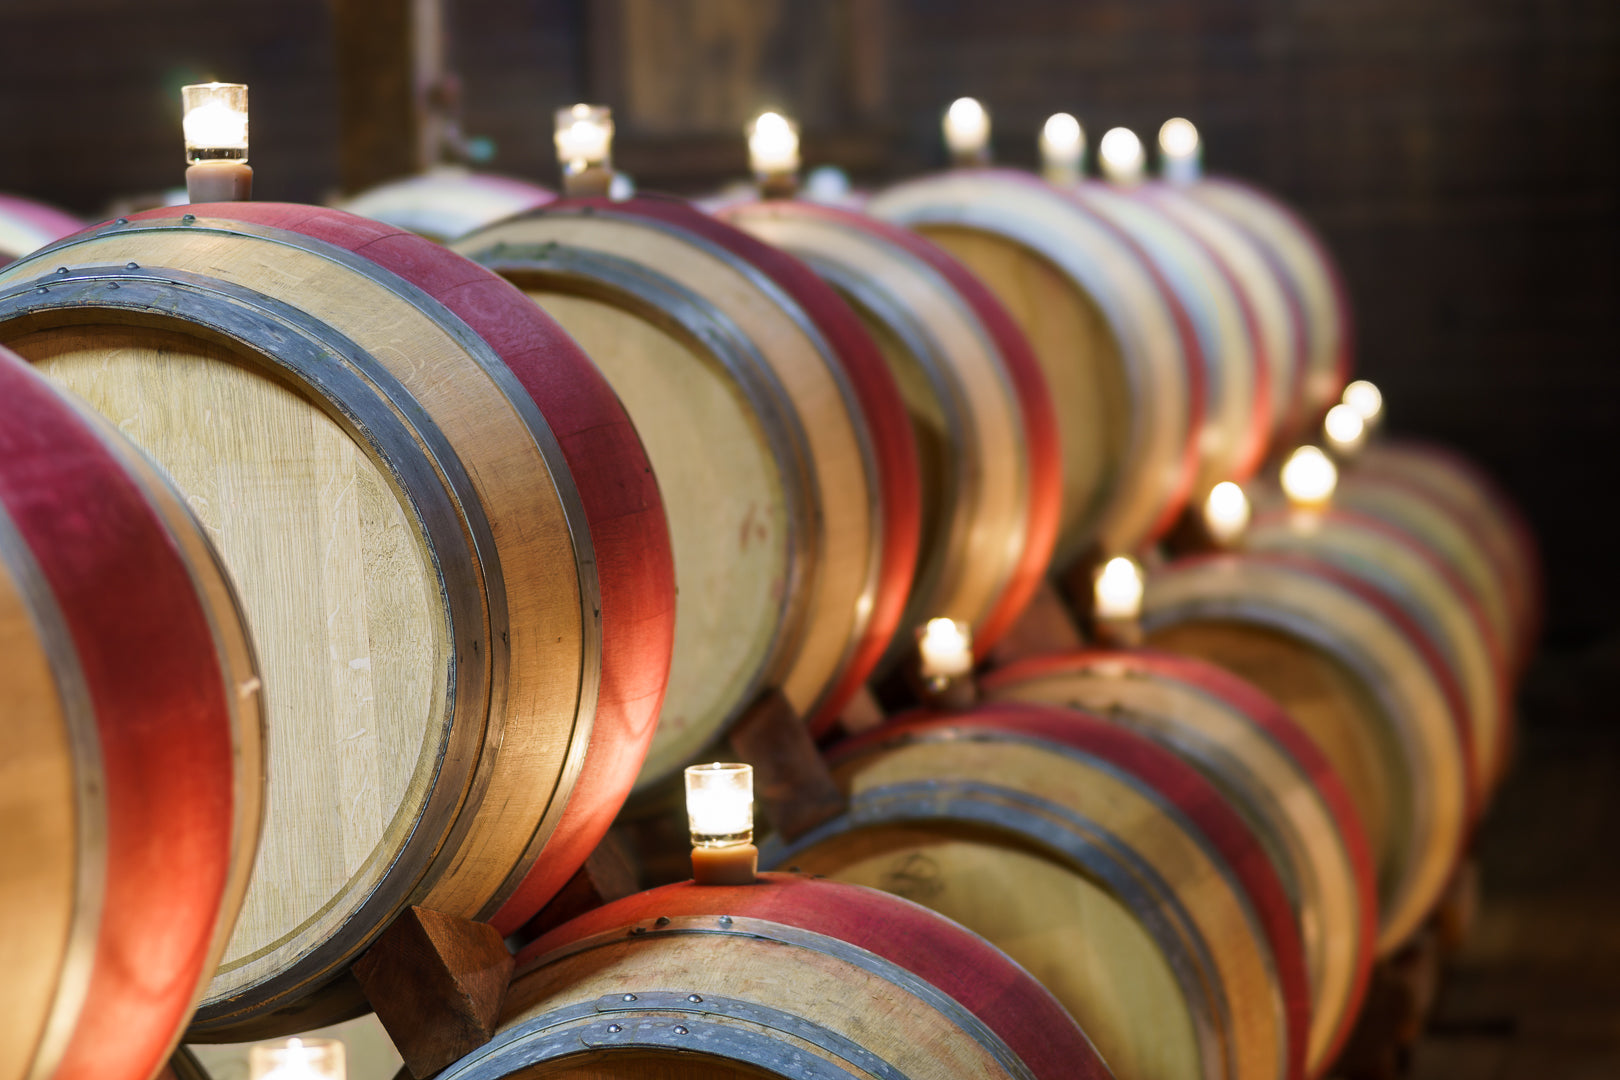 Wine barrels in Napa Valley